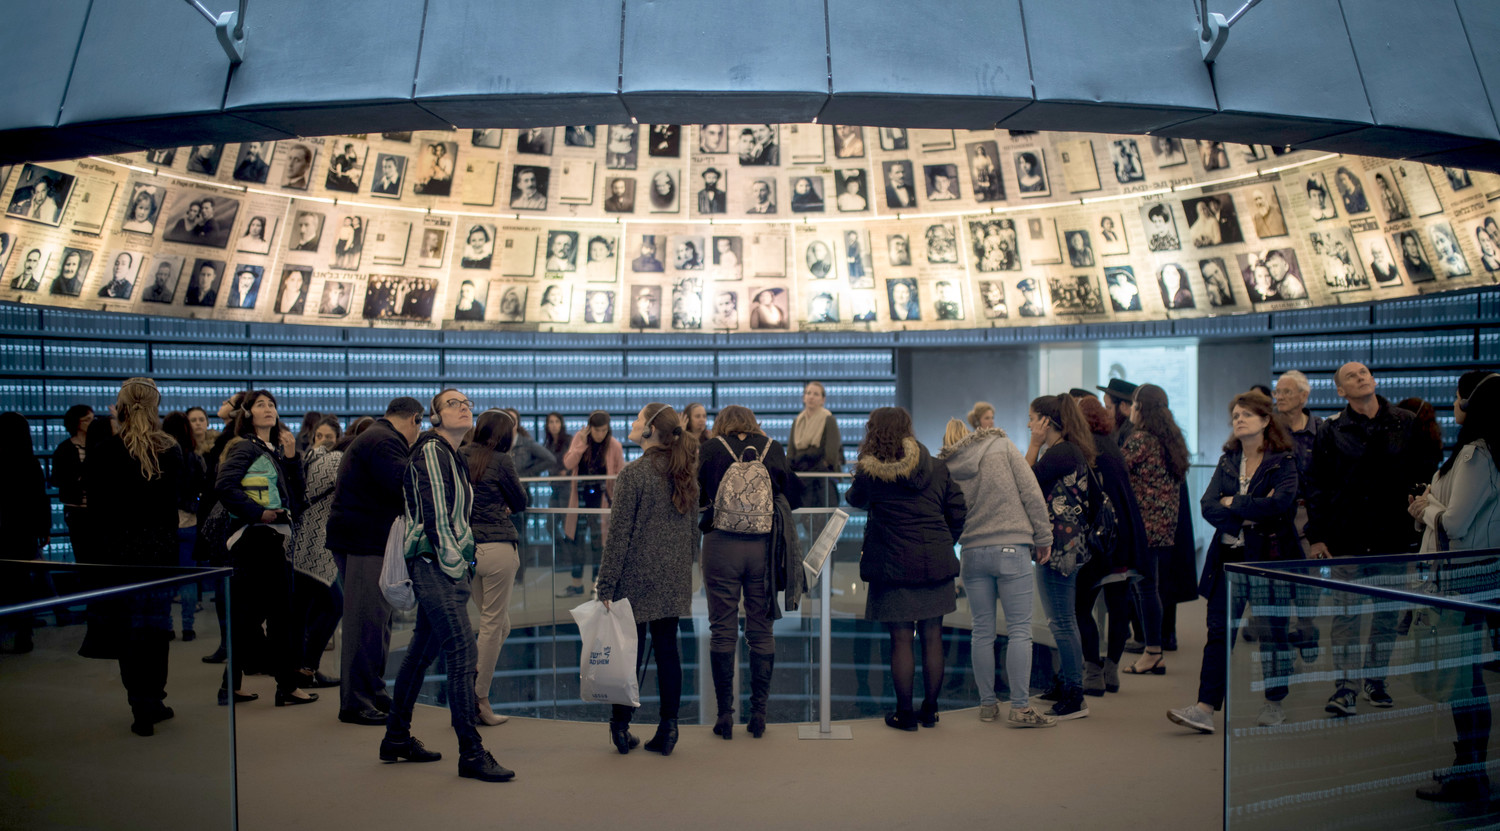 Visitors at the Yad Vashem Holocaust Memorial museum in Jerusalem on April 10, 2018, ahead of Israeli National Holocaust Remembrance Day.